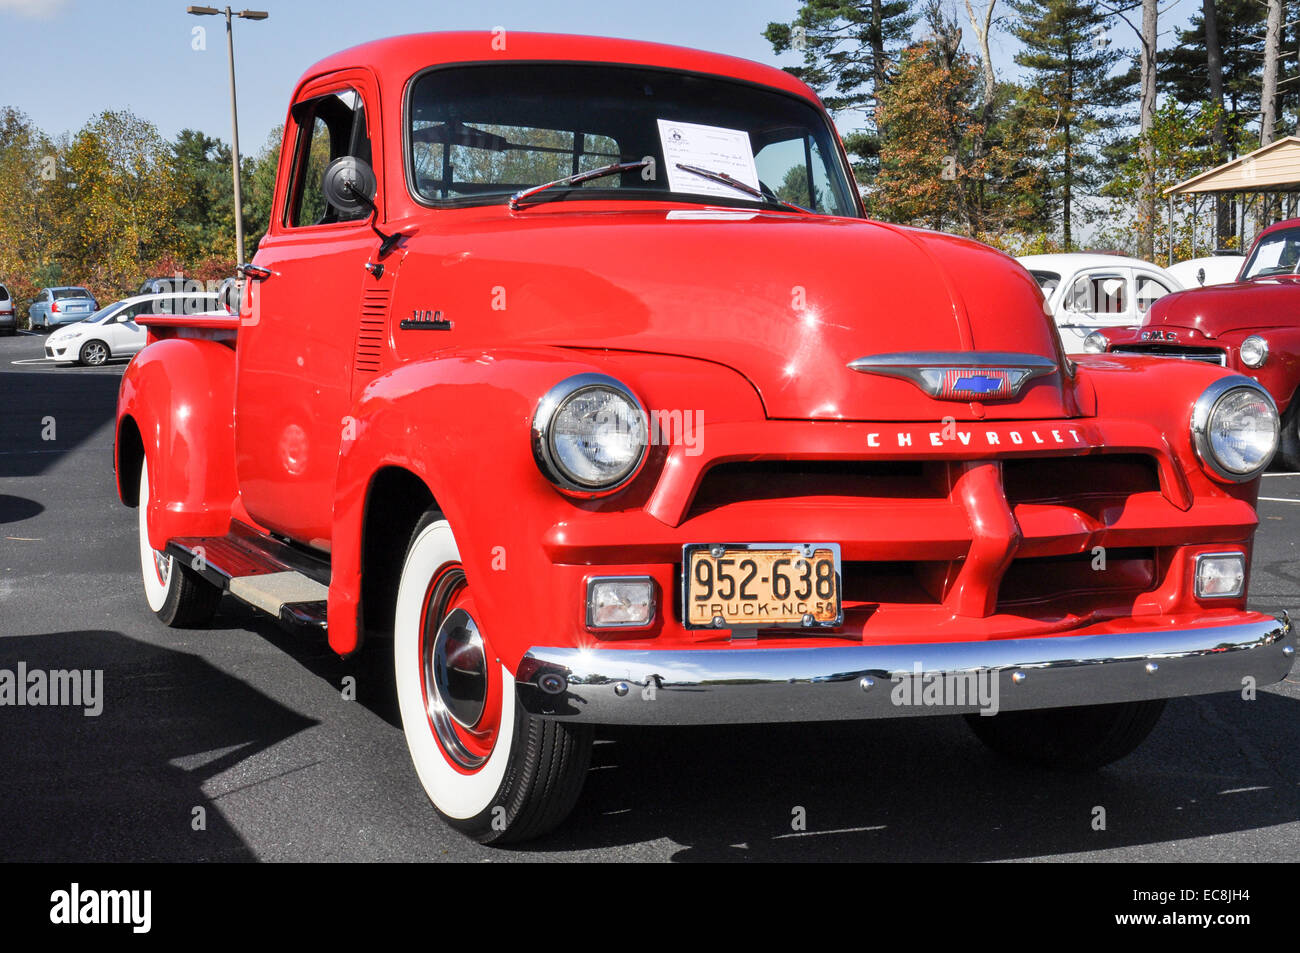 Chevrolet Pickup Truck Stock Photos 1954 Chevy C10 Pick Up A Image